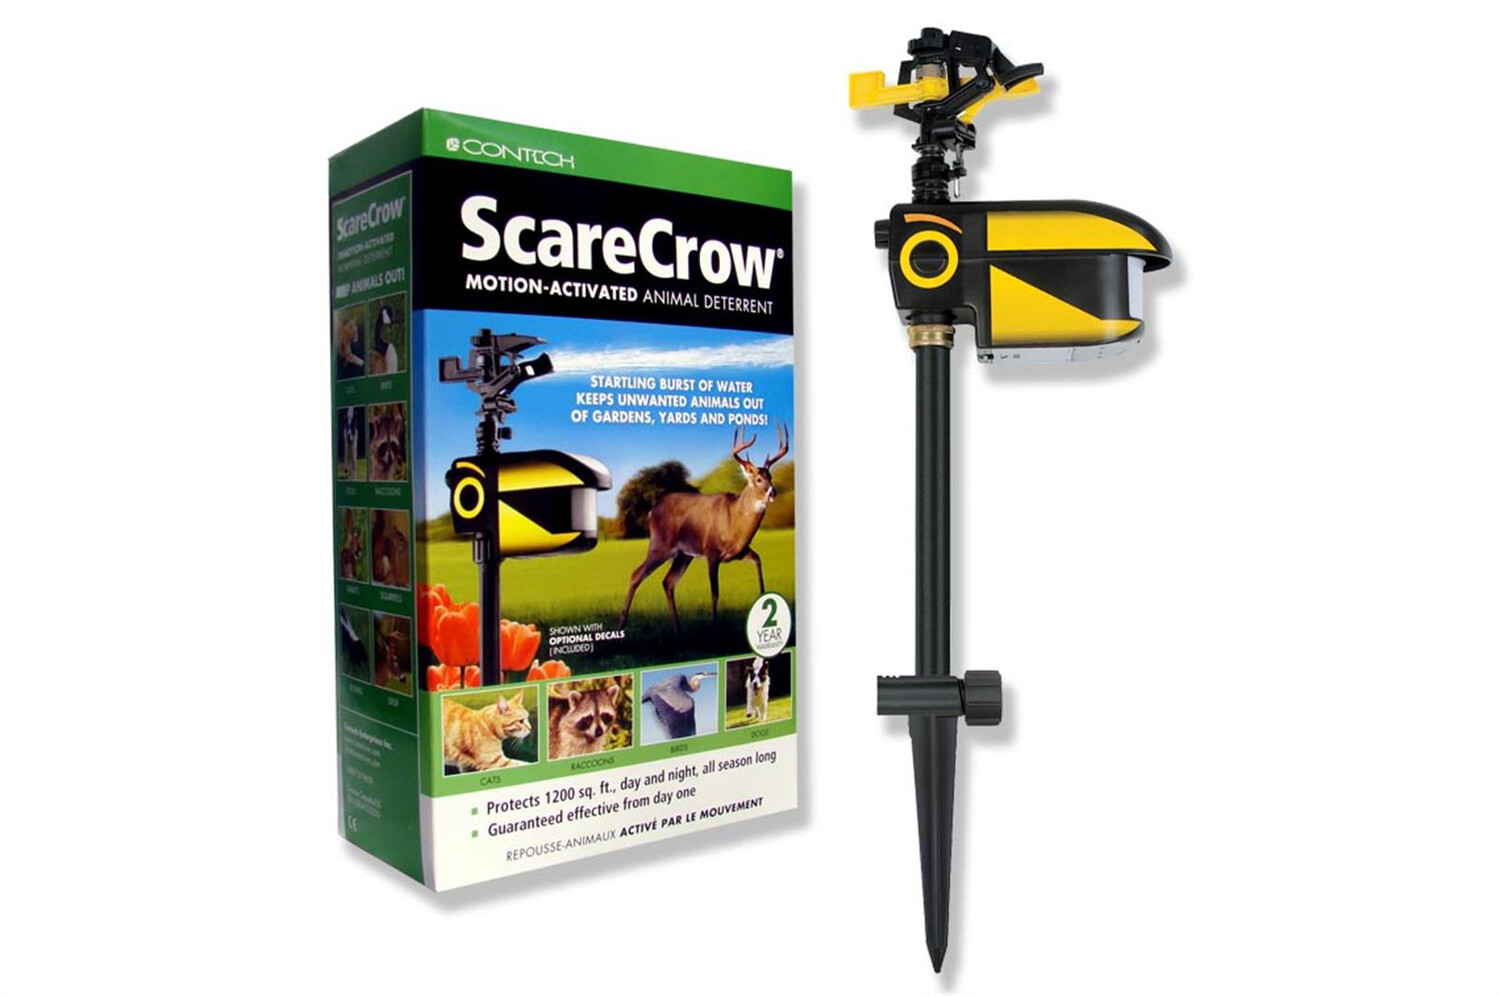 Scarecrow Motion-activated Deterrent